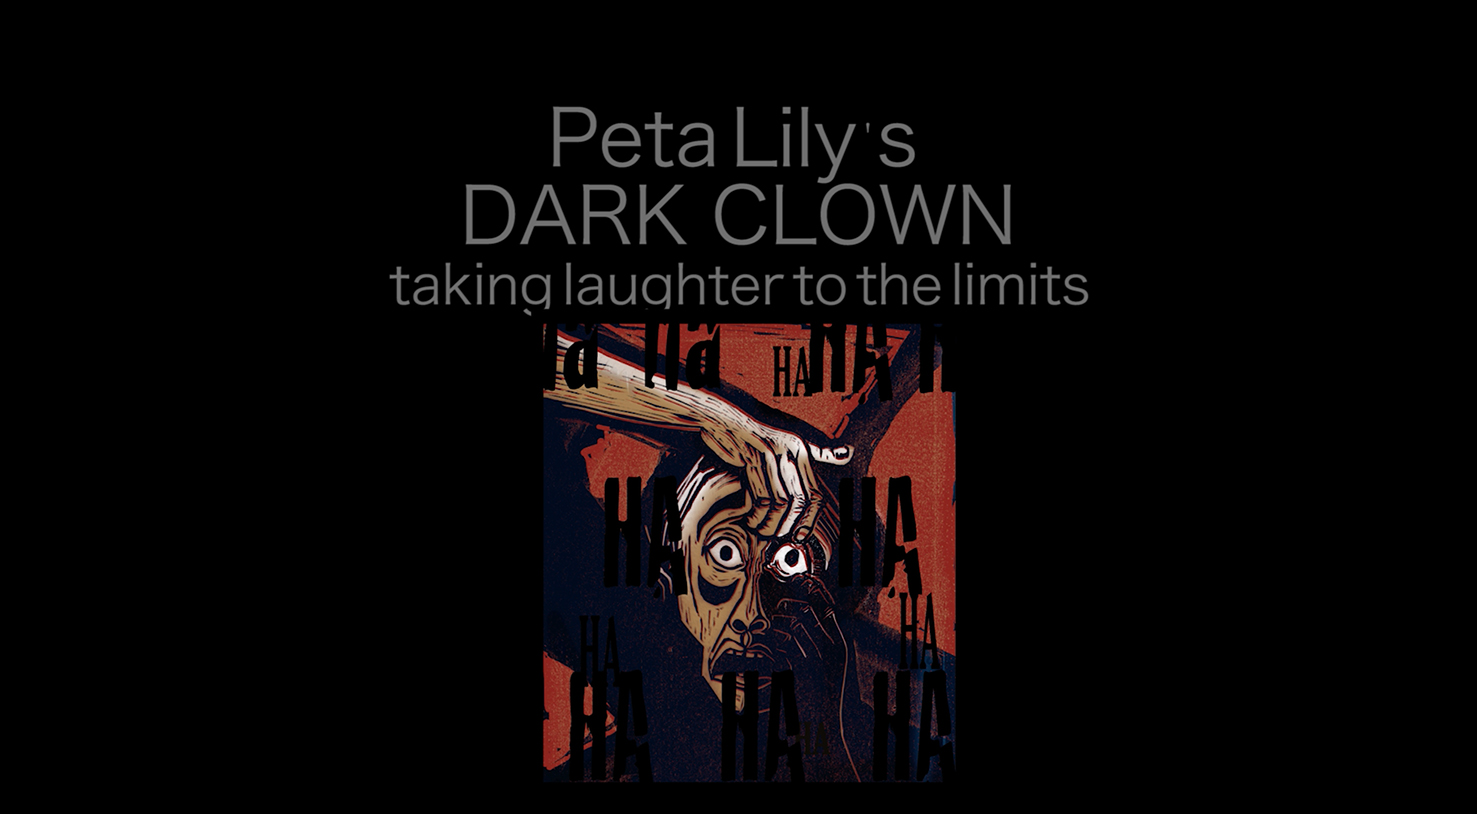 - Peta Lily's DARK CLOWN shows the thinking behind the deeply funny, deeply painful work she teaches and makes. This film takes the viewer on a journey from the antics of the red nose clown to the angst filled world of the dark clown. Available to watch here.